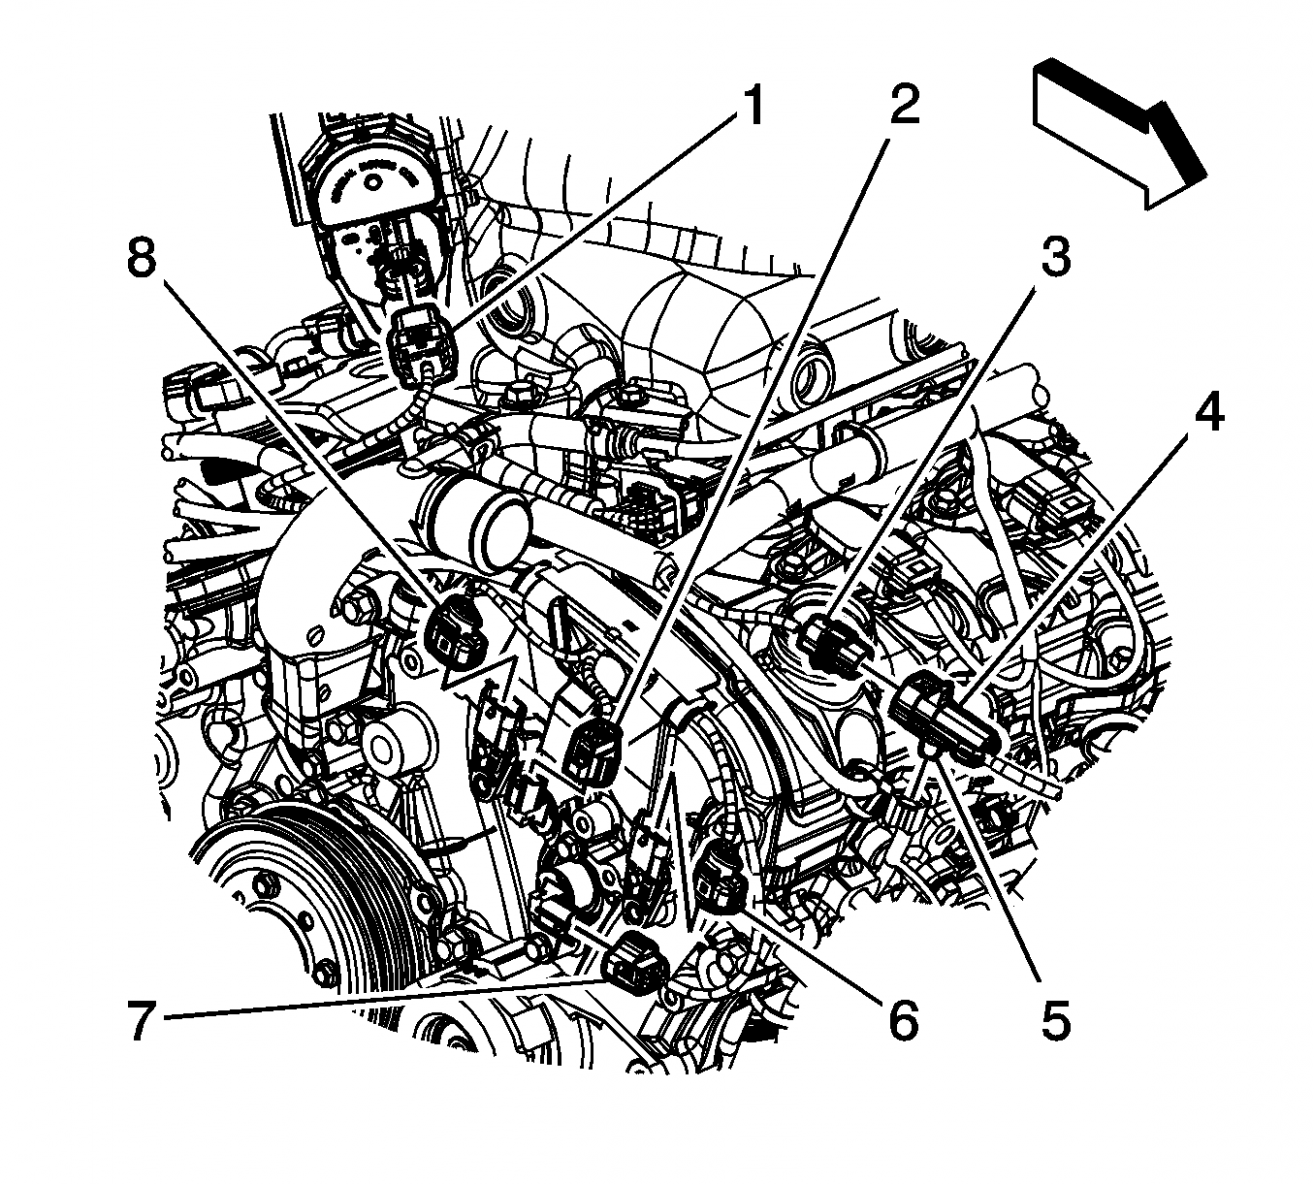 Engine Diagram 6 Suzuki Xl6 Ii Engine Diagram 6 Suzuki Xl6